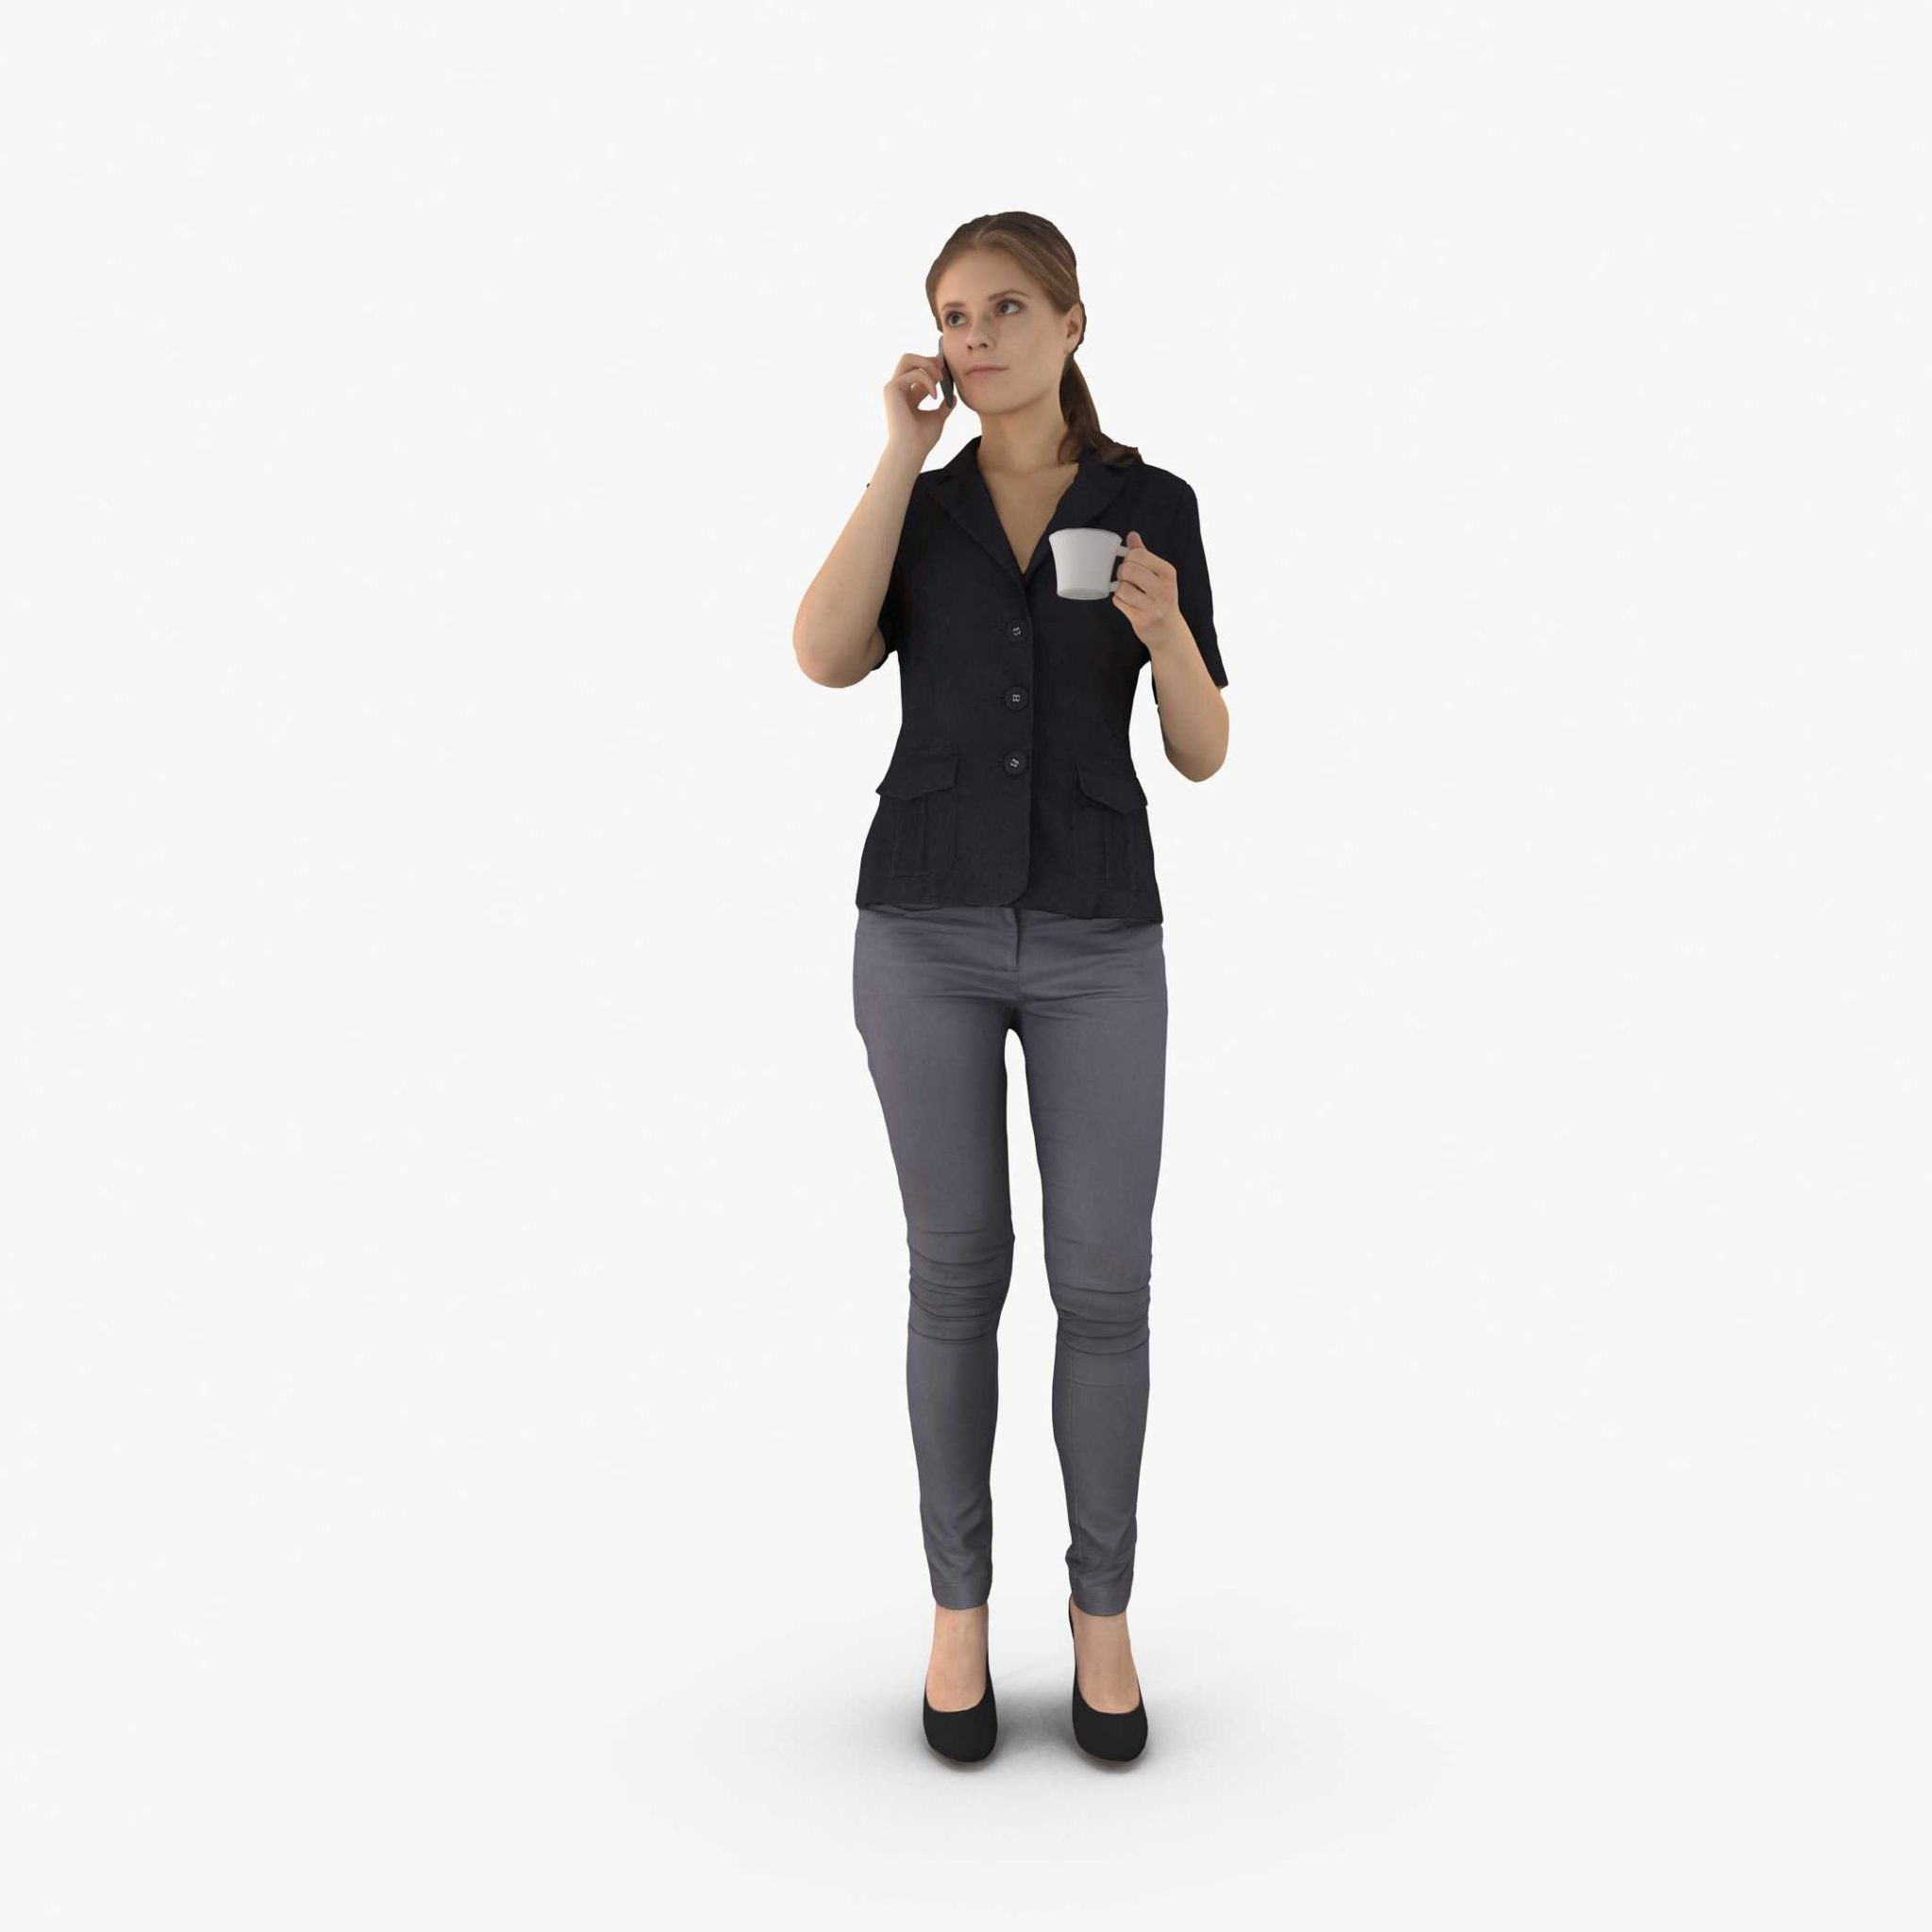 Woman Talking 3D Model | 3DTree Scanning Studio